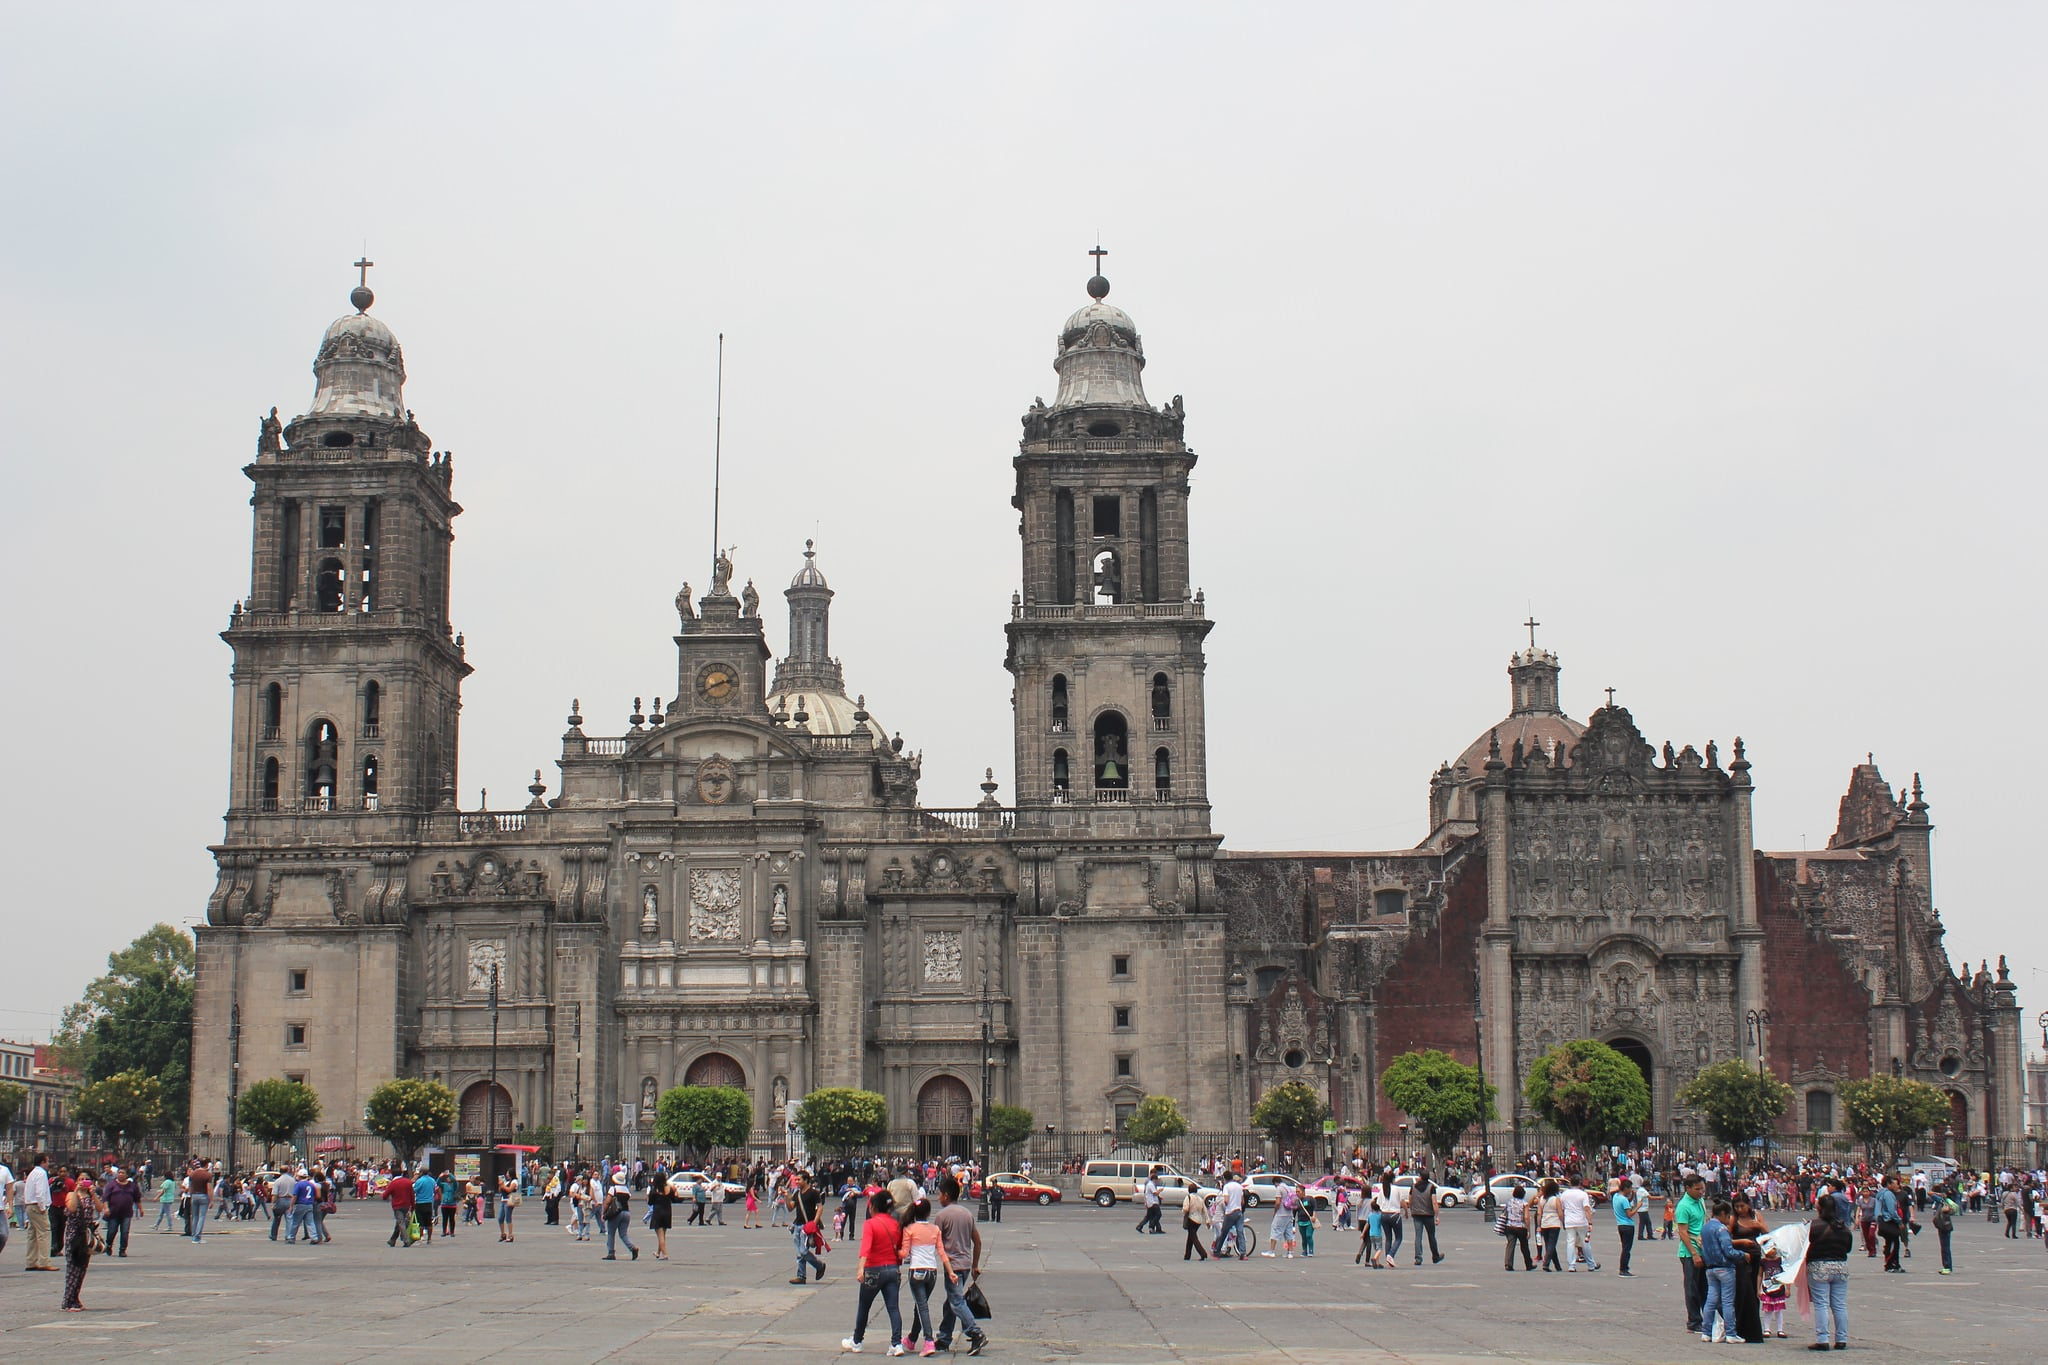 Зображення Plaza Downtown Mexico. mexicocity metropolitancathedral cathedral assumption catedralmetropolitana romancatholic archdiocese claudiodearciniega tabernacle unescoworldheritagelist unescoworldheritage unesco worldheritagelist worldheritage heritage worldheritagesite distritofederal federaldistrict 2015 mexico